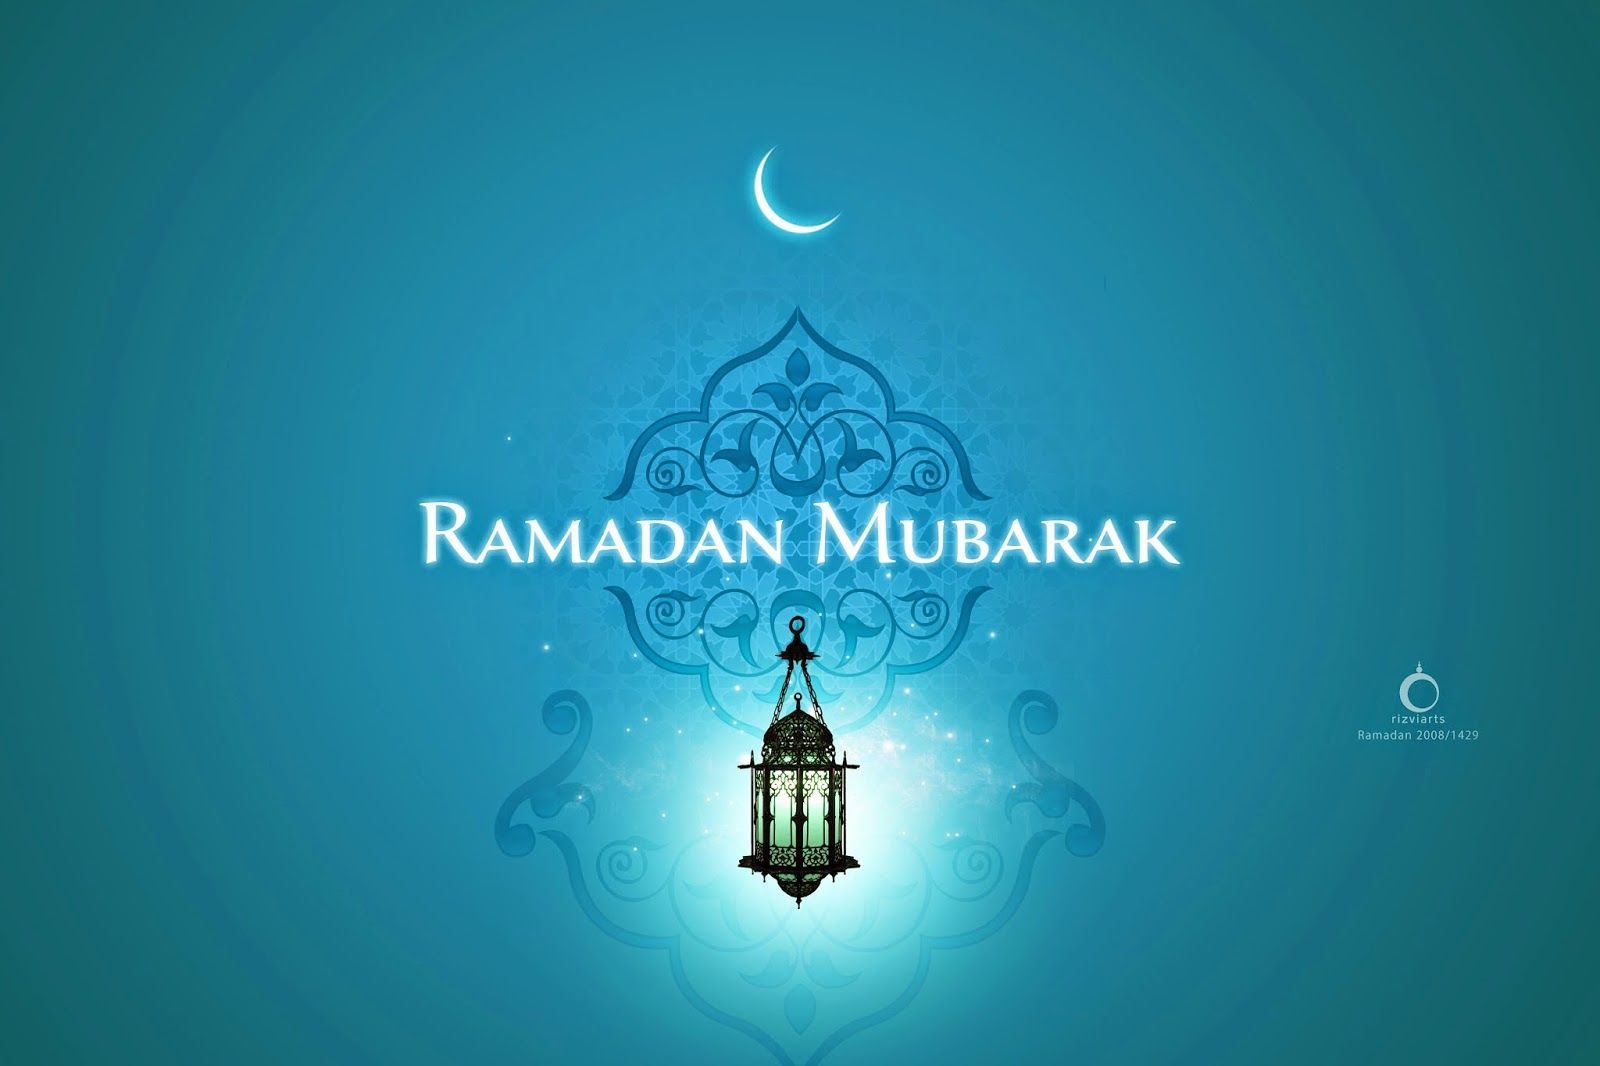 Happy Ramadan 2015 Wishes - English Ramadan Mubarak Quotes ... for Happy Ramadan Wallpaper  70ref